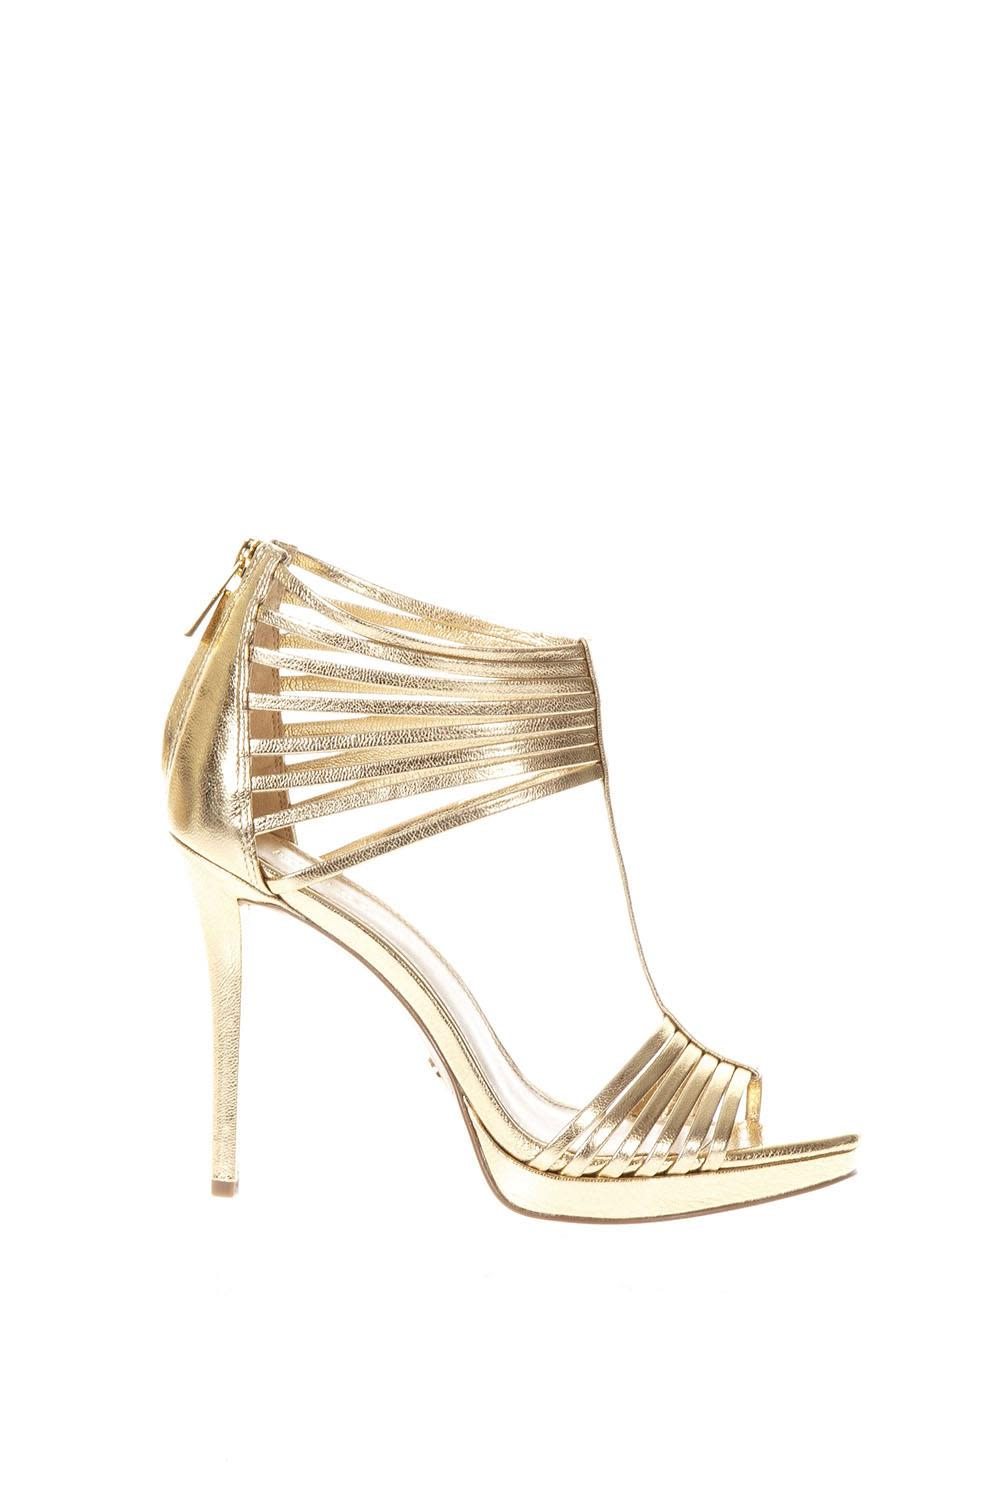 MICHAEL Michael Kors Leann Gold Coloured Leather Sandals